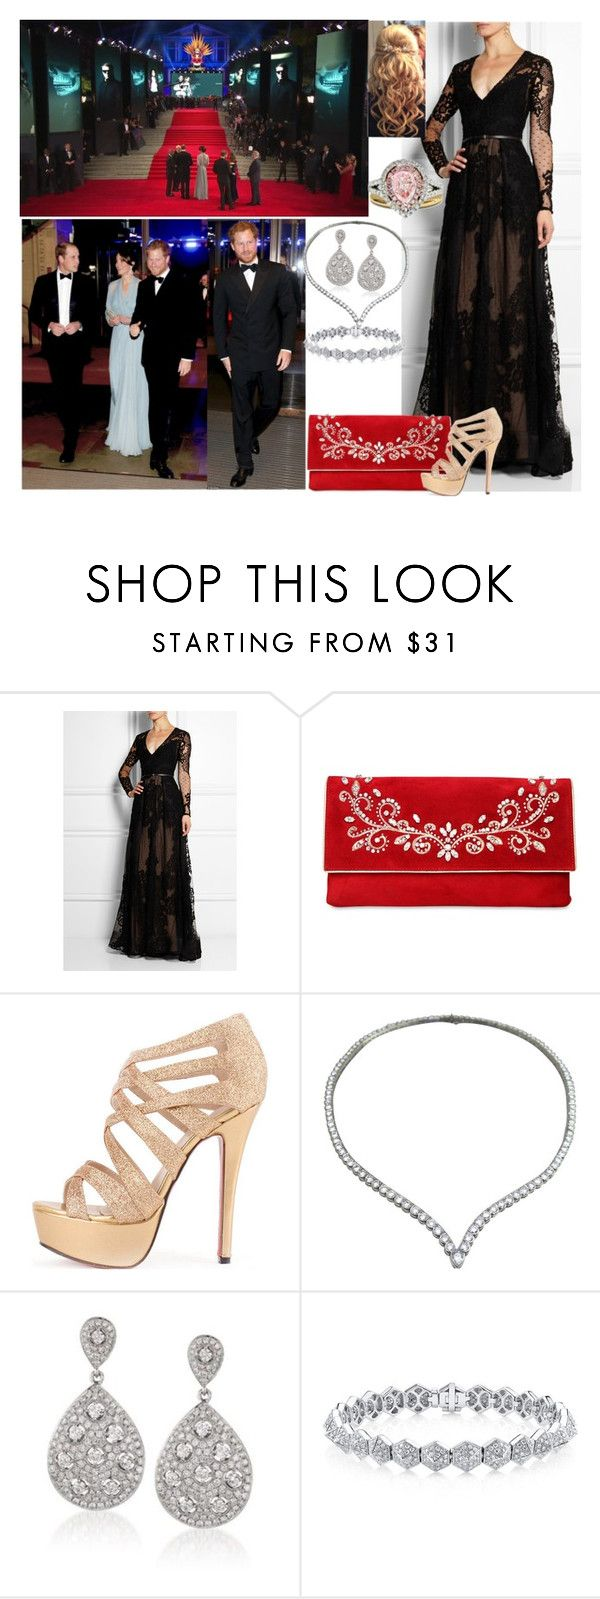 """""""Attending the British Premiere of Spectre with Harry, Will, and Kate"""" by duchess-rebecca ❤ liked on Polyvore featuring James Bond 007, Elie Saab, Casadei, Van Cleef & Arpels, Ross-Simons and Diana M. Jewels"""